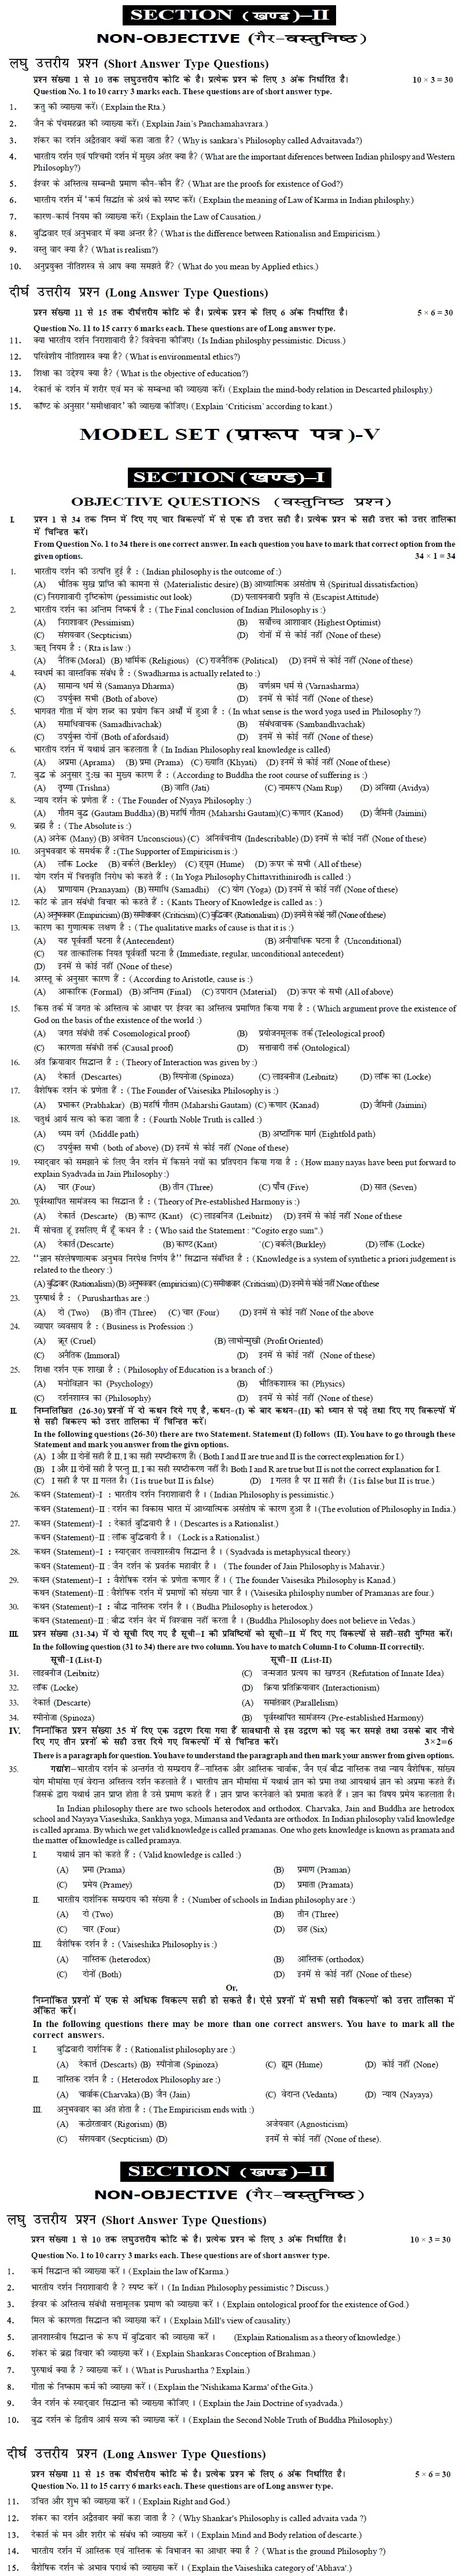 Bihar Board Class XII Arts Model Question Papers - Philosophy